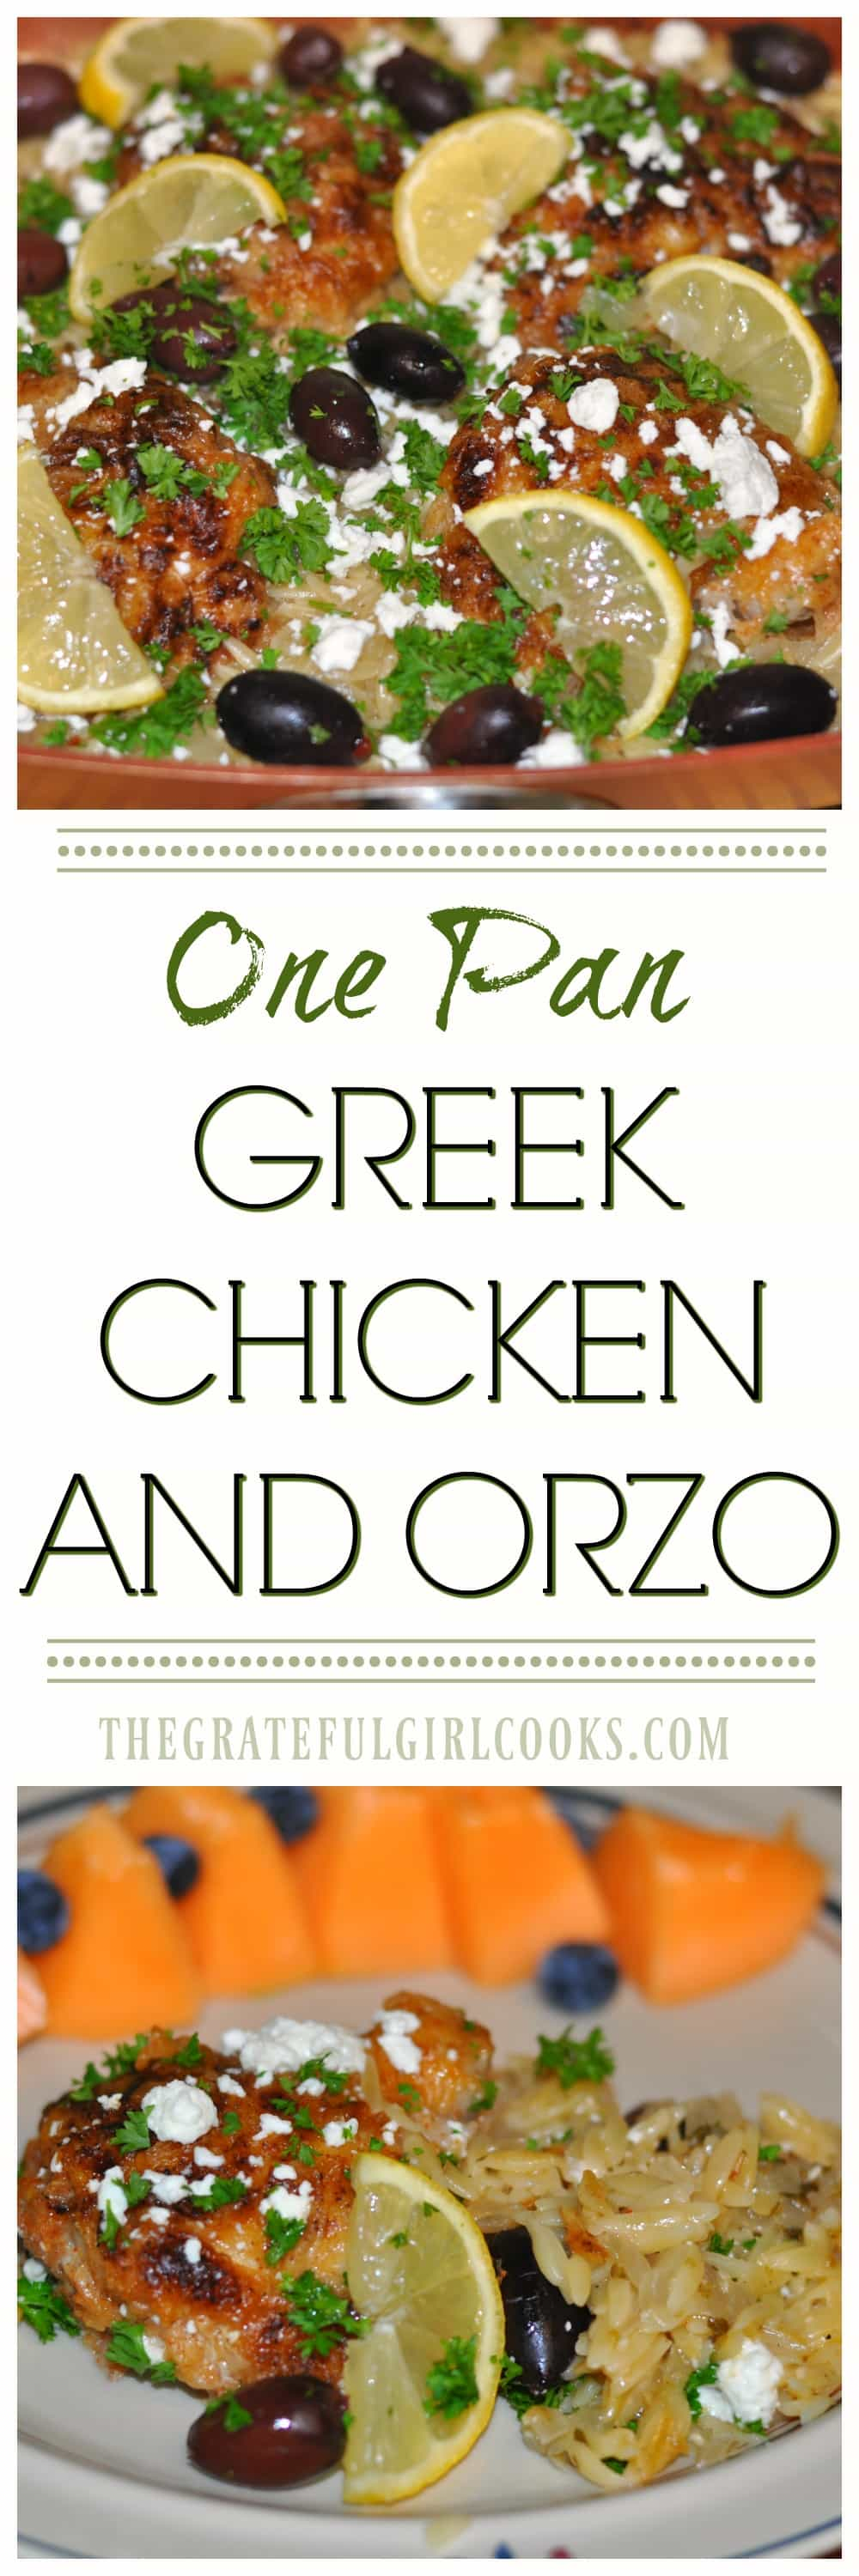 One Pan Greek Chicken And Orzo / The Grateful Girl Cooks! A delicious one pan meal featuring chicken thighs, orzo pasta, and classic Greek flavor from spices, kalamata olives and feta cheese. Ready to eat in 30 minutes!